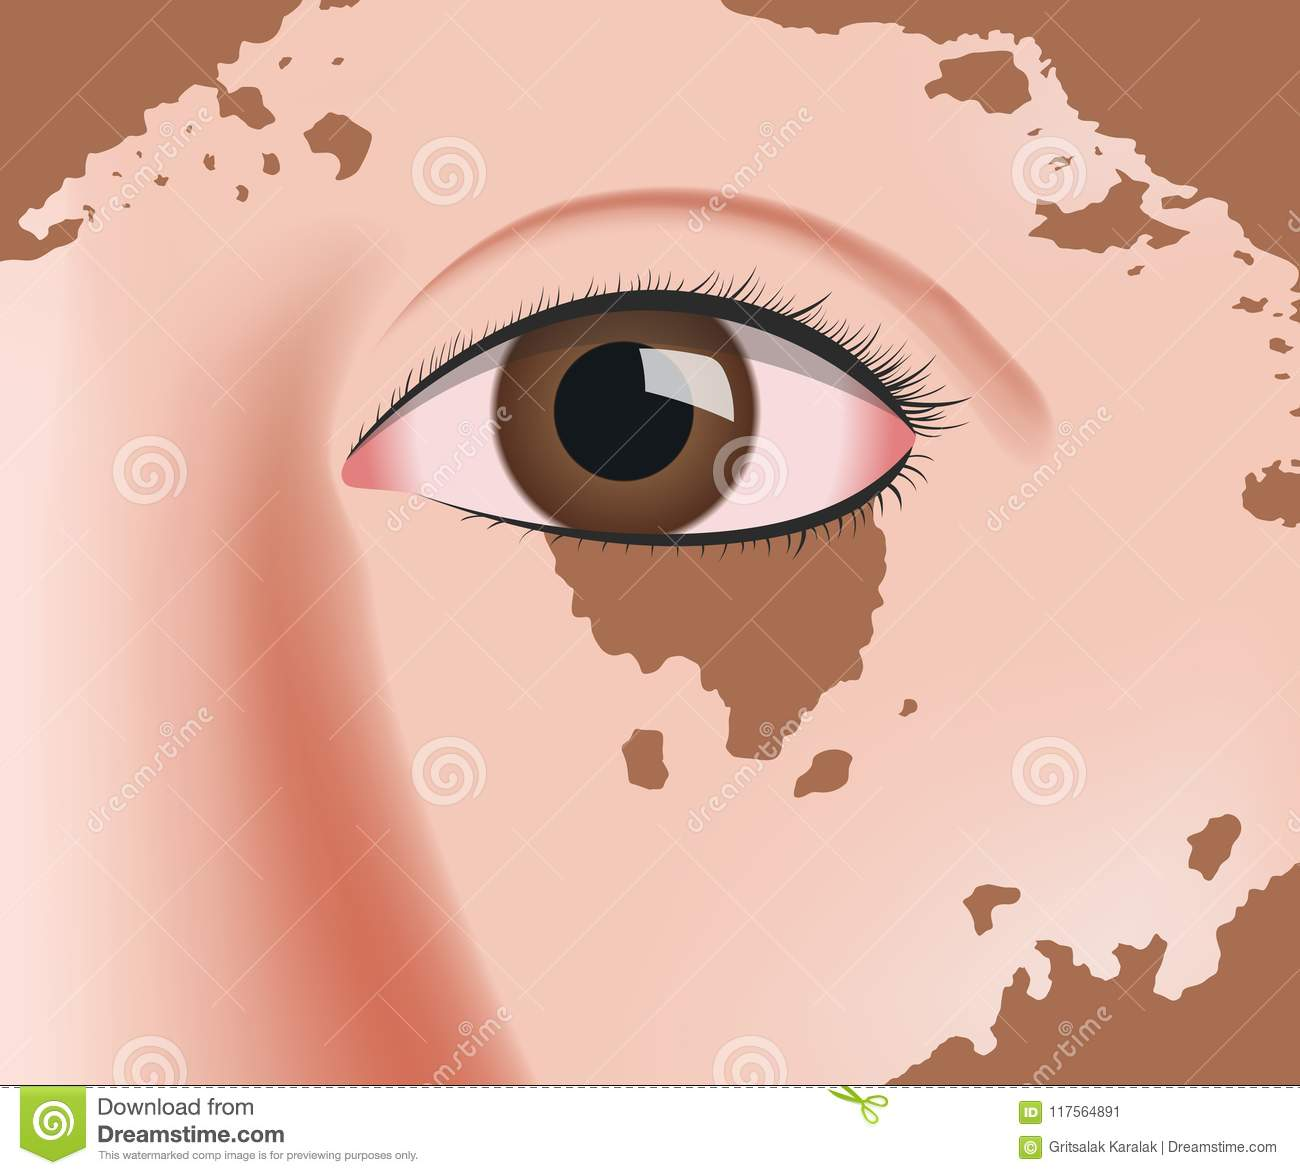 Vitiligo On Skin Layer Anatomy Stock Illustration - Illustration of ...